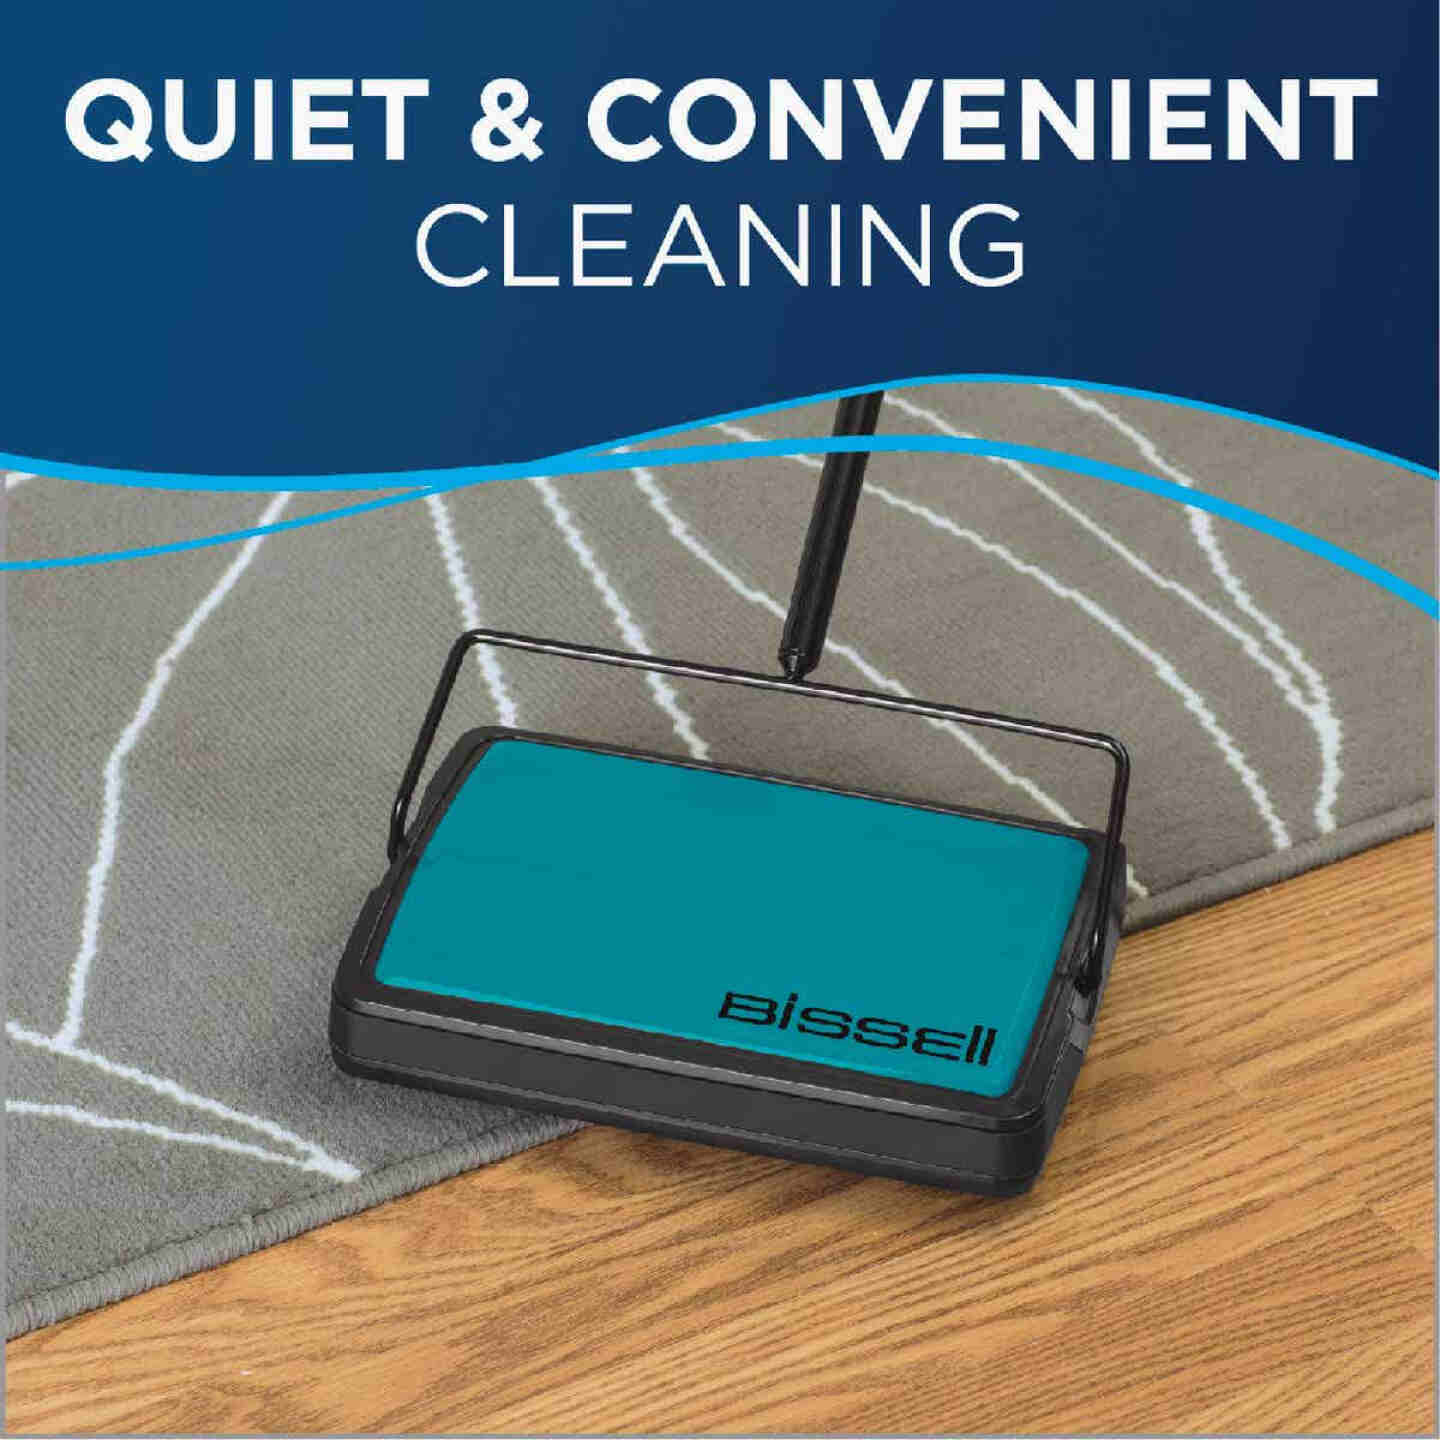 Bissell EasySweep Compact Manual Sweeper Image 5